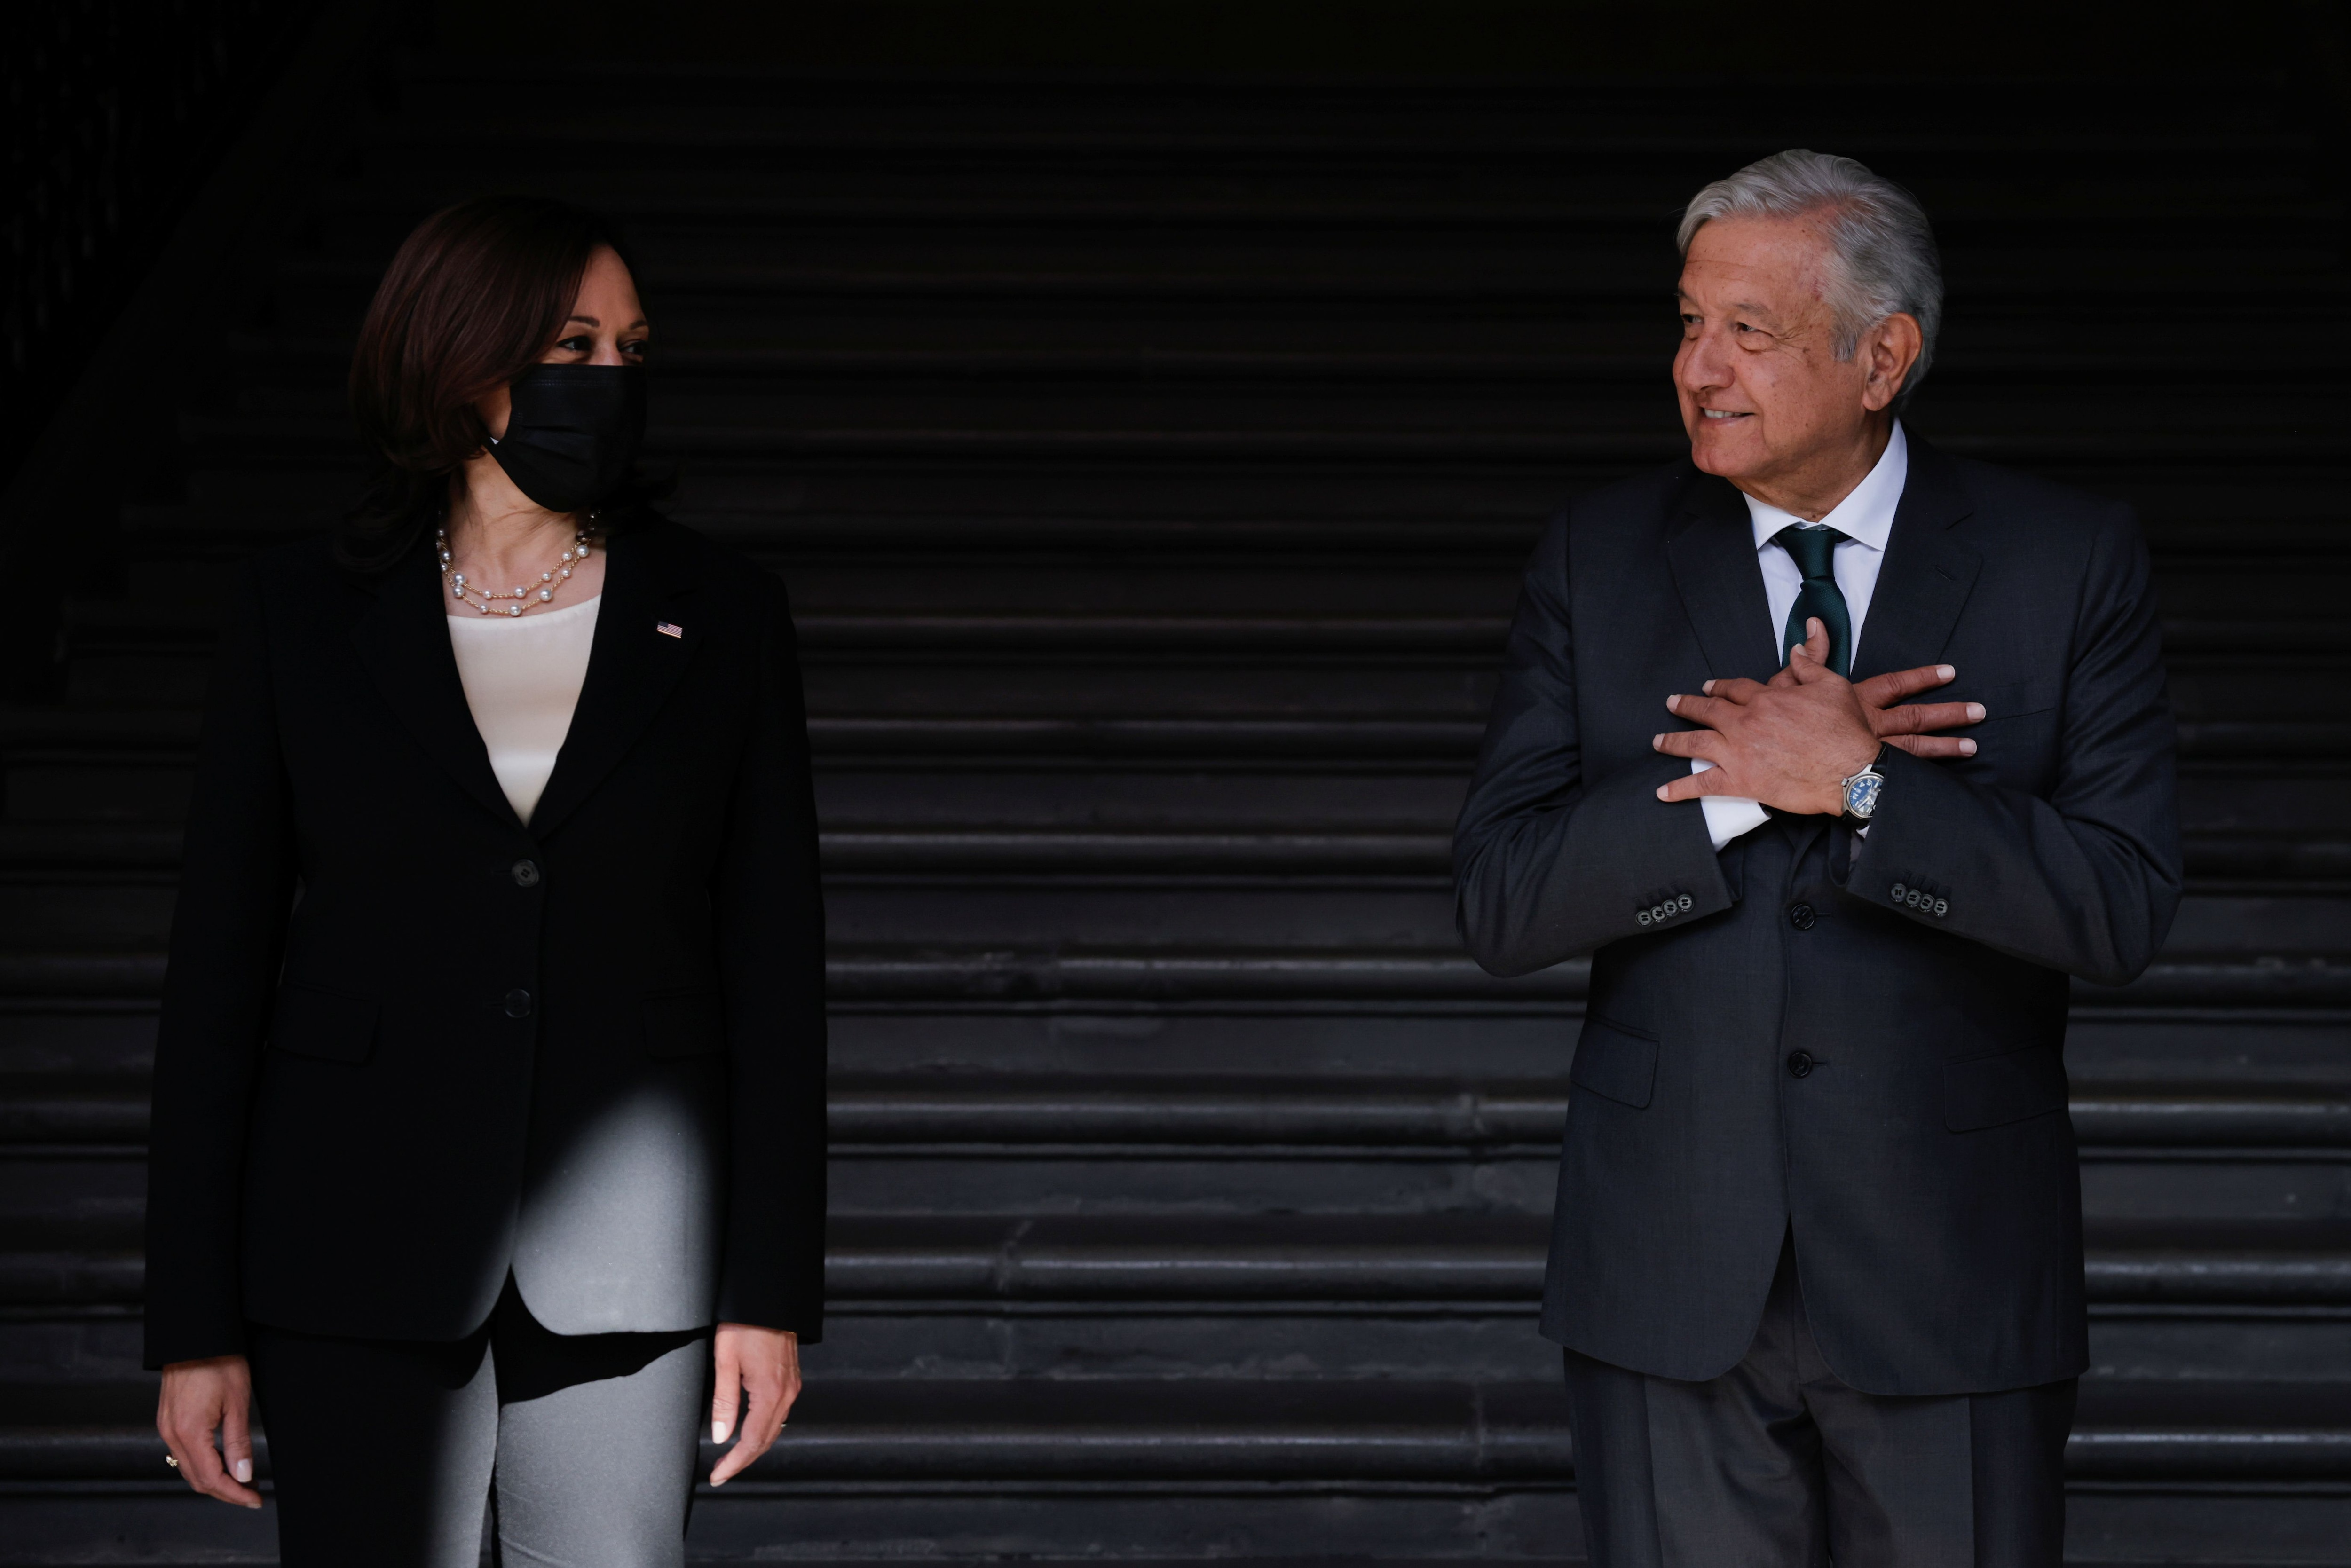 Mexico's President Andres Manuel Lopez Obrador gestures next to U.S. Vice President Kamala Harris as they attend the signing ceremony of a Memorandum of Understanding between the United States and Mexico to establish a strategic partnership to cooperate on development programs in the Northern Triangle at the Palacio Nacional in Mexico City, Mexico June 8, 2021.  REUTERS/Carlos Barria